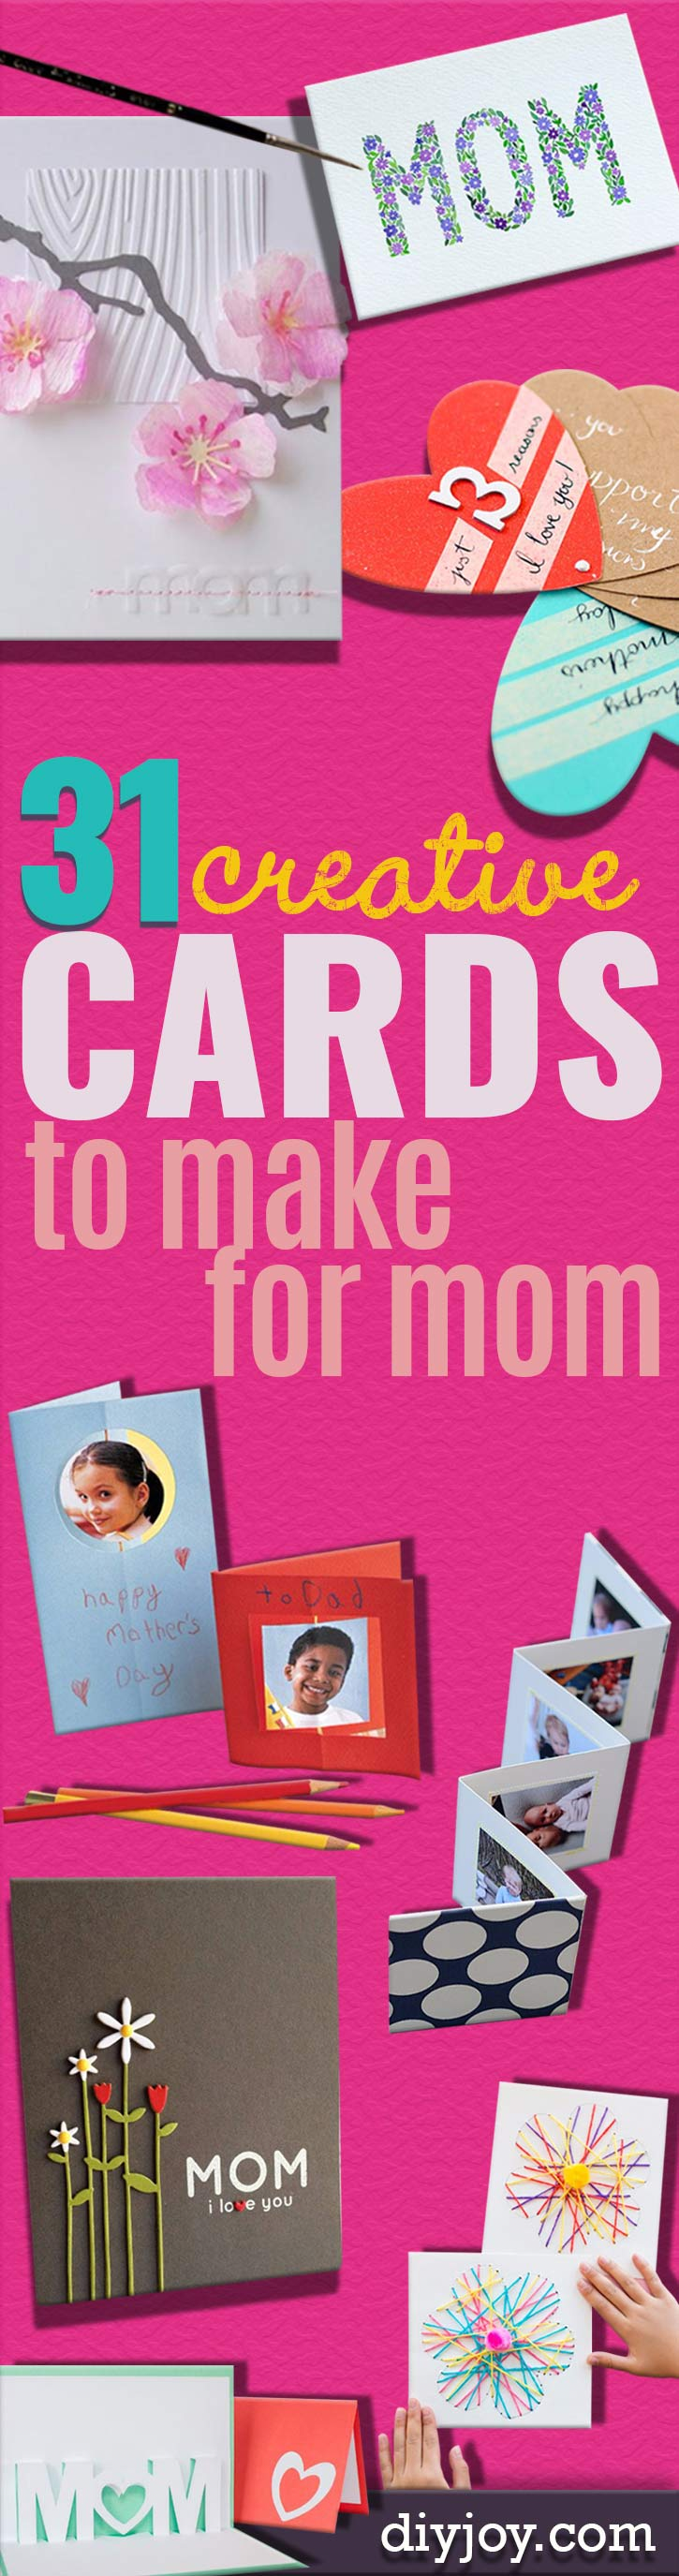 Phantasy Step By Diy Day Cards Mor S Day Card Ideas Diy Mors Day Cards Thoughtful Homemade Card Ideas 1st Grade Mor S Day Card Ideas From Baby